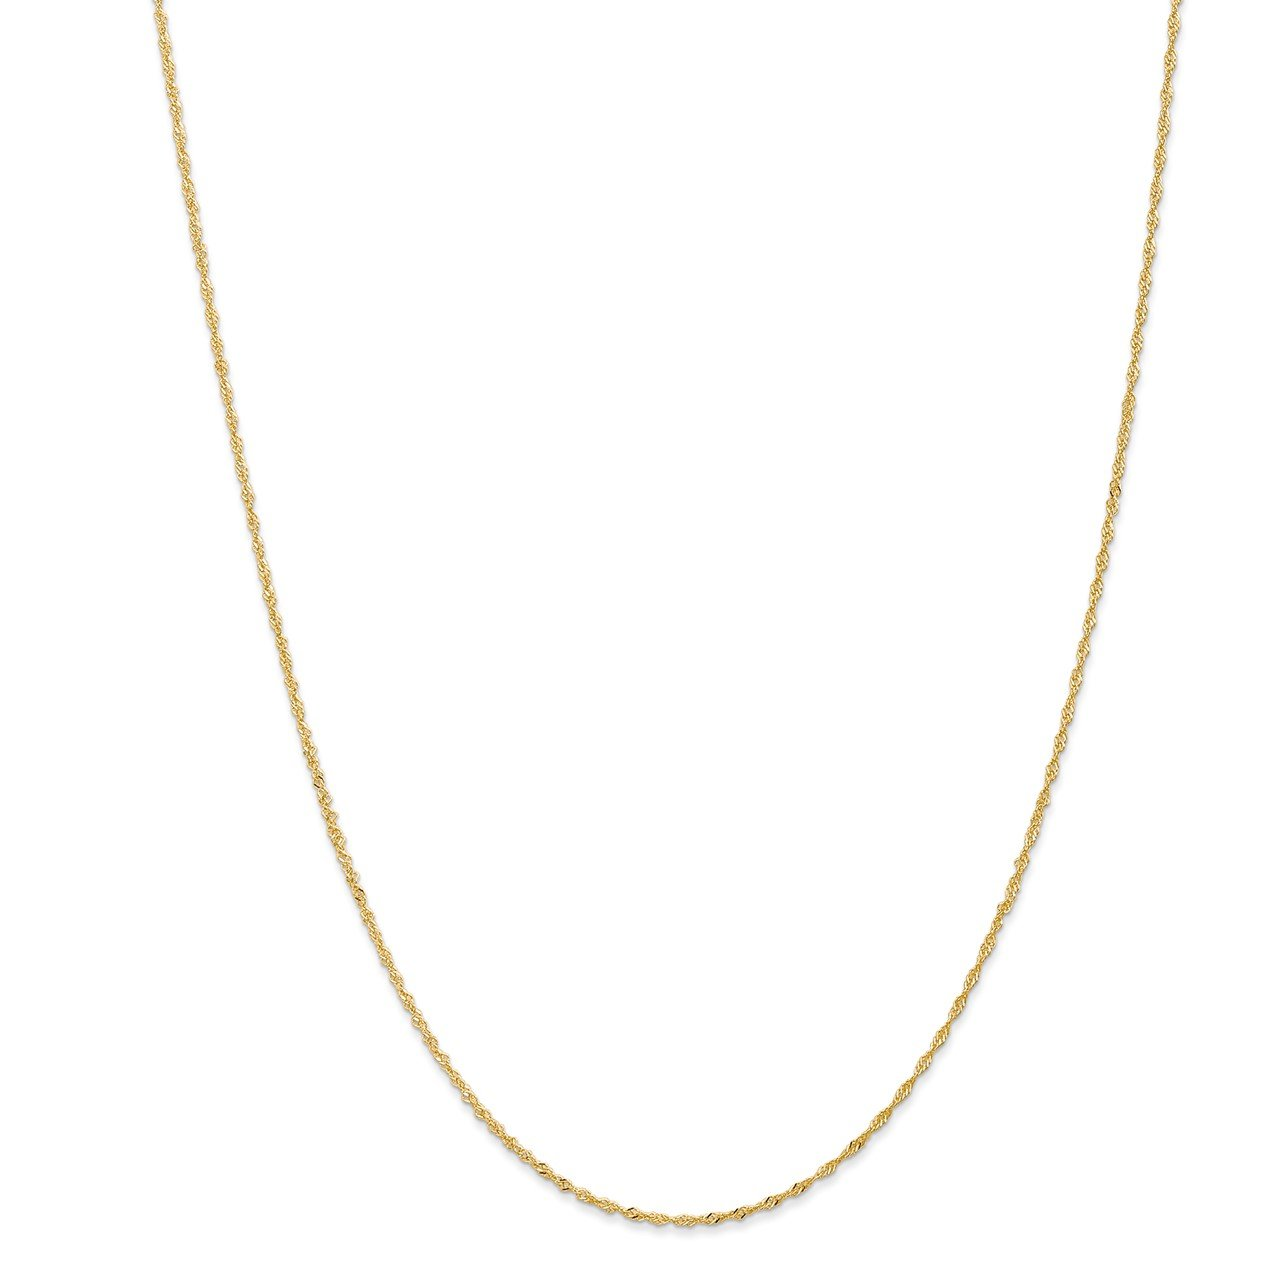 Leslie's 14K 1mm Singapore with Spring Ring Clasp Chain